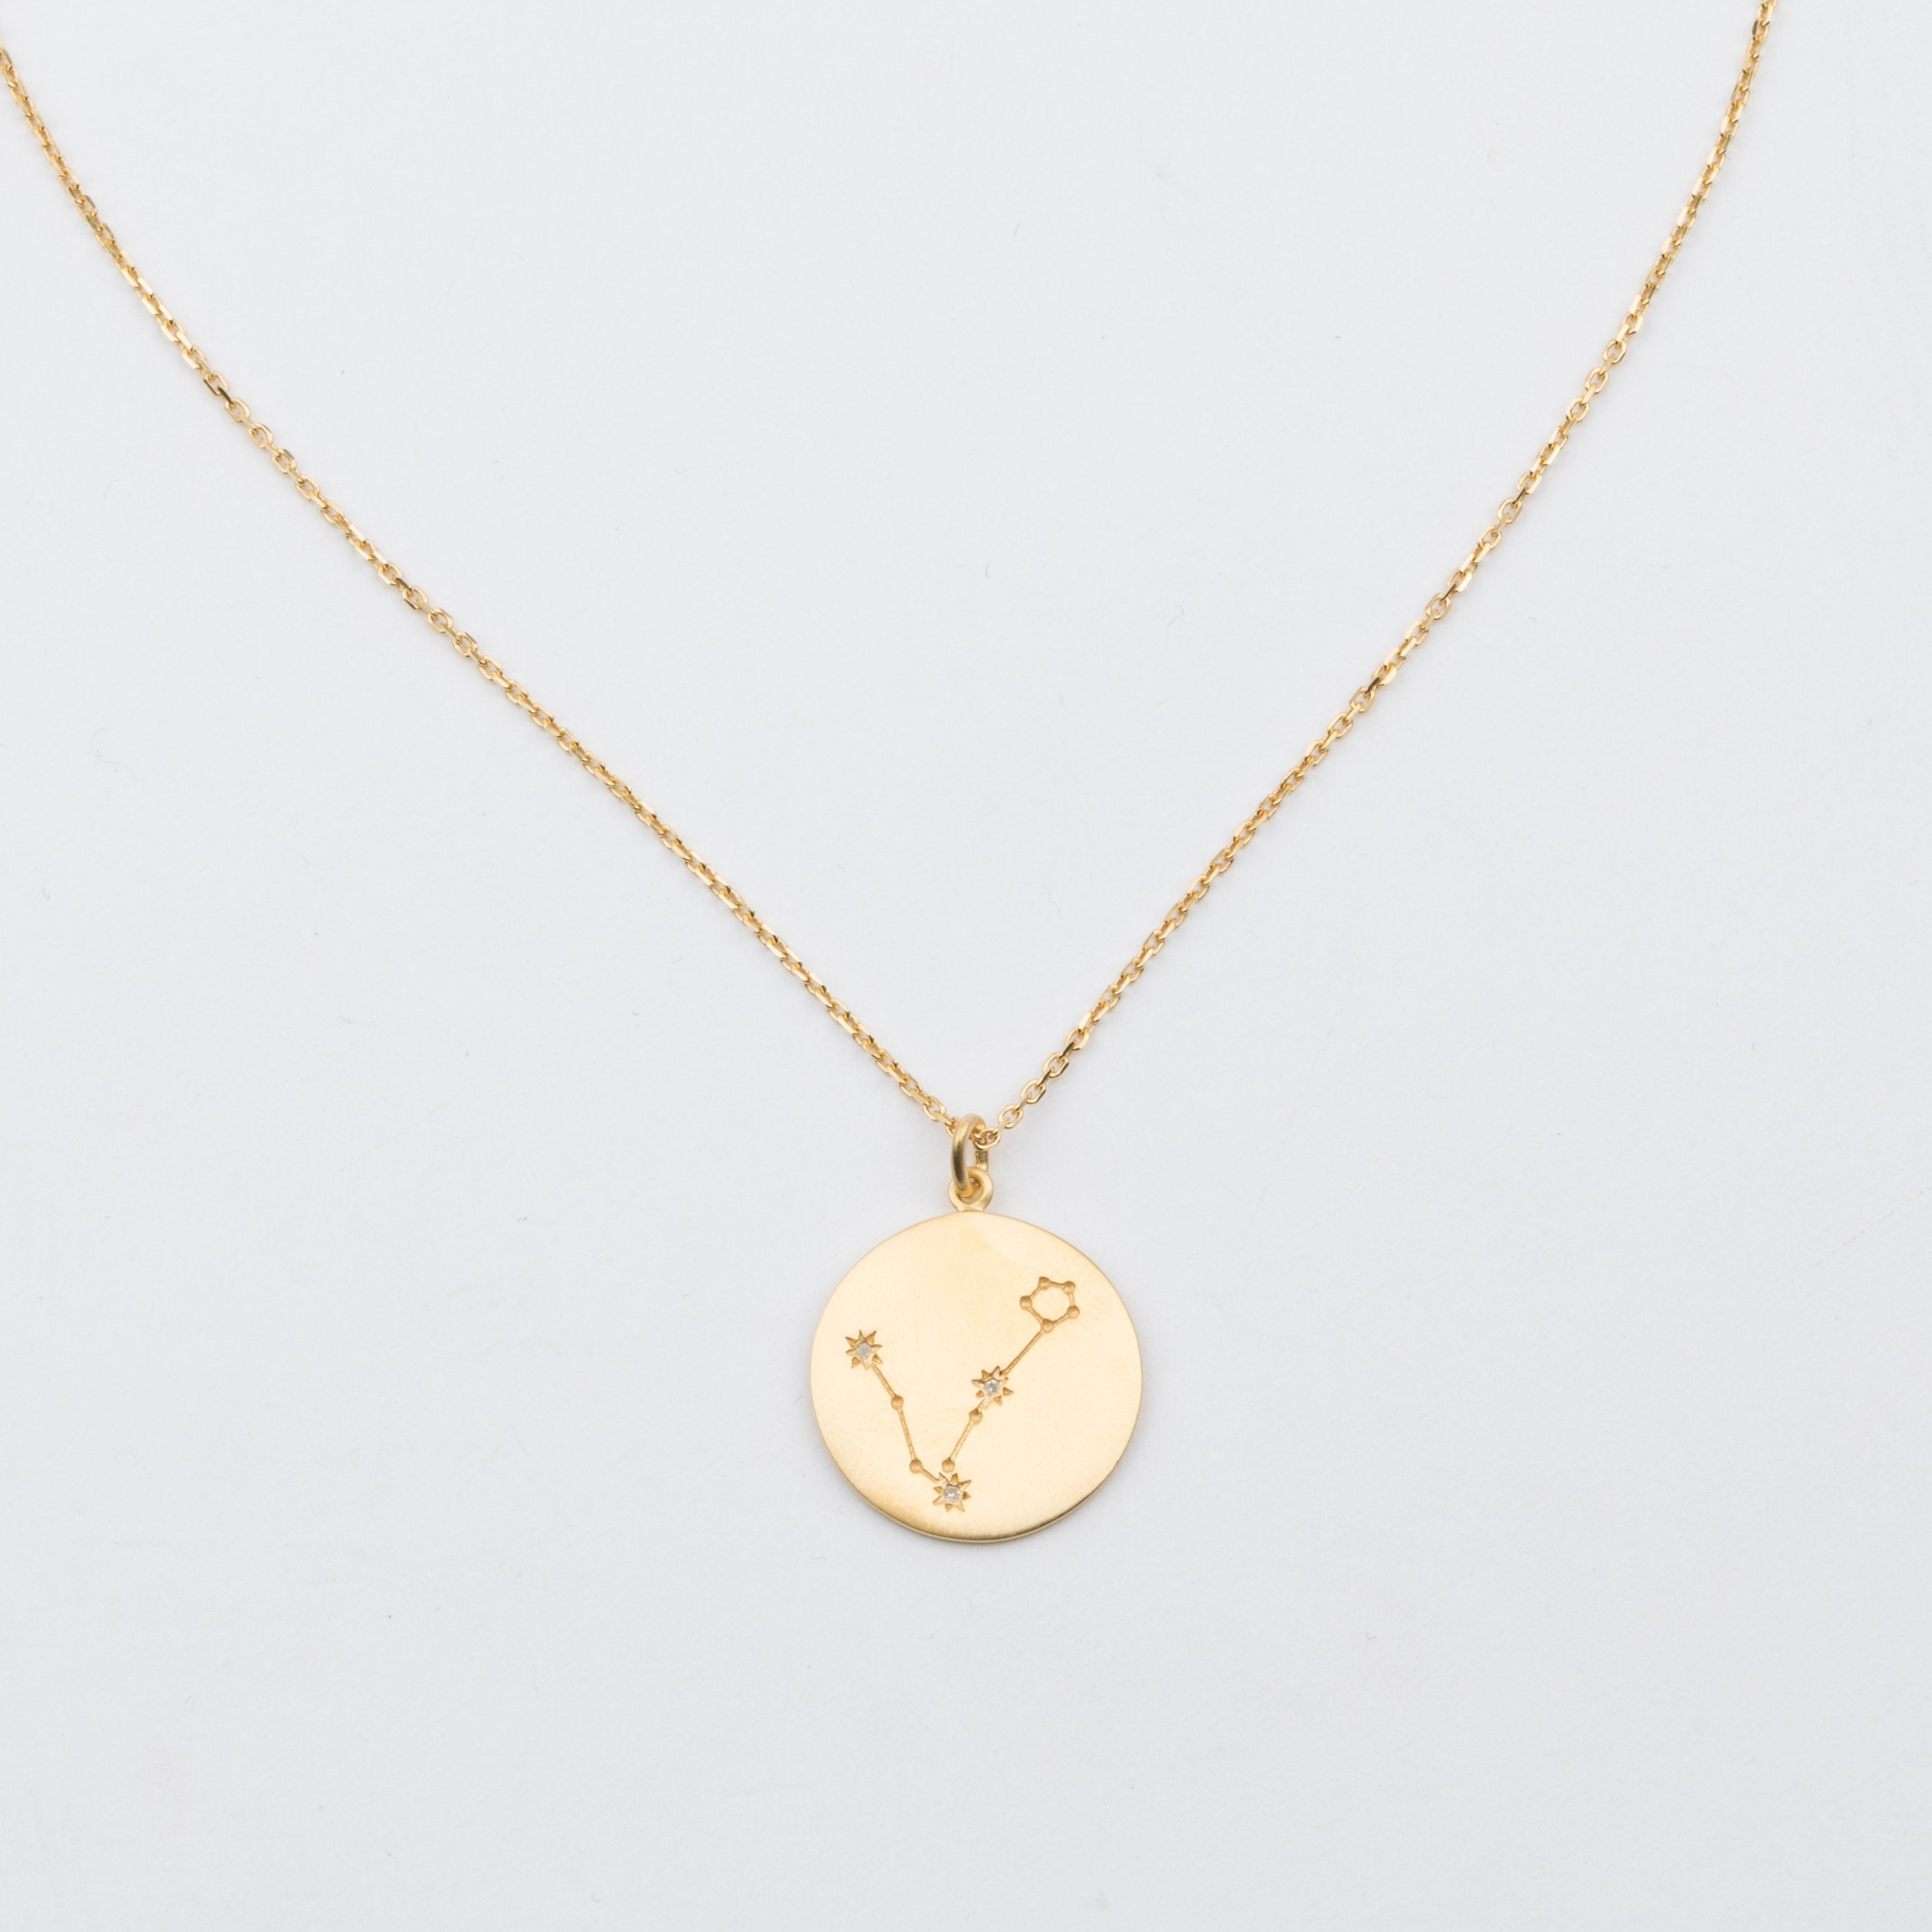 16f569093c8 14K Gold Vermeil Diamond Constellation Pisces Necklace - necklaces - Carrie  Elizabeth Jewelry local eclectic